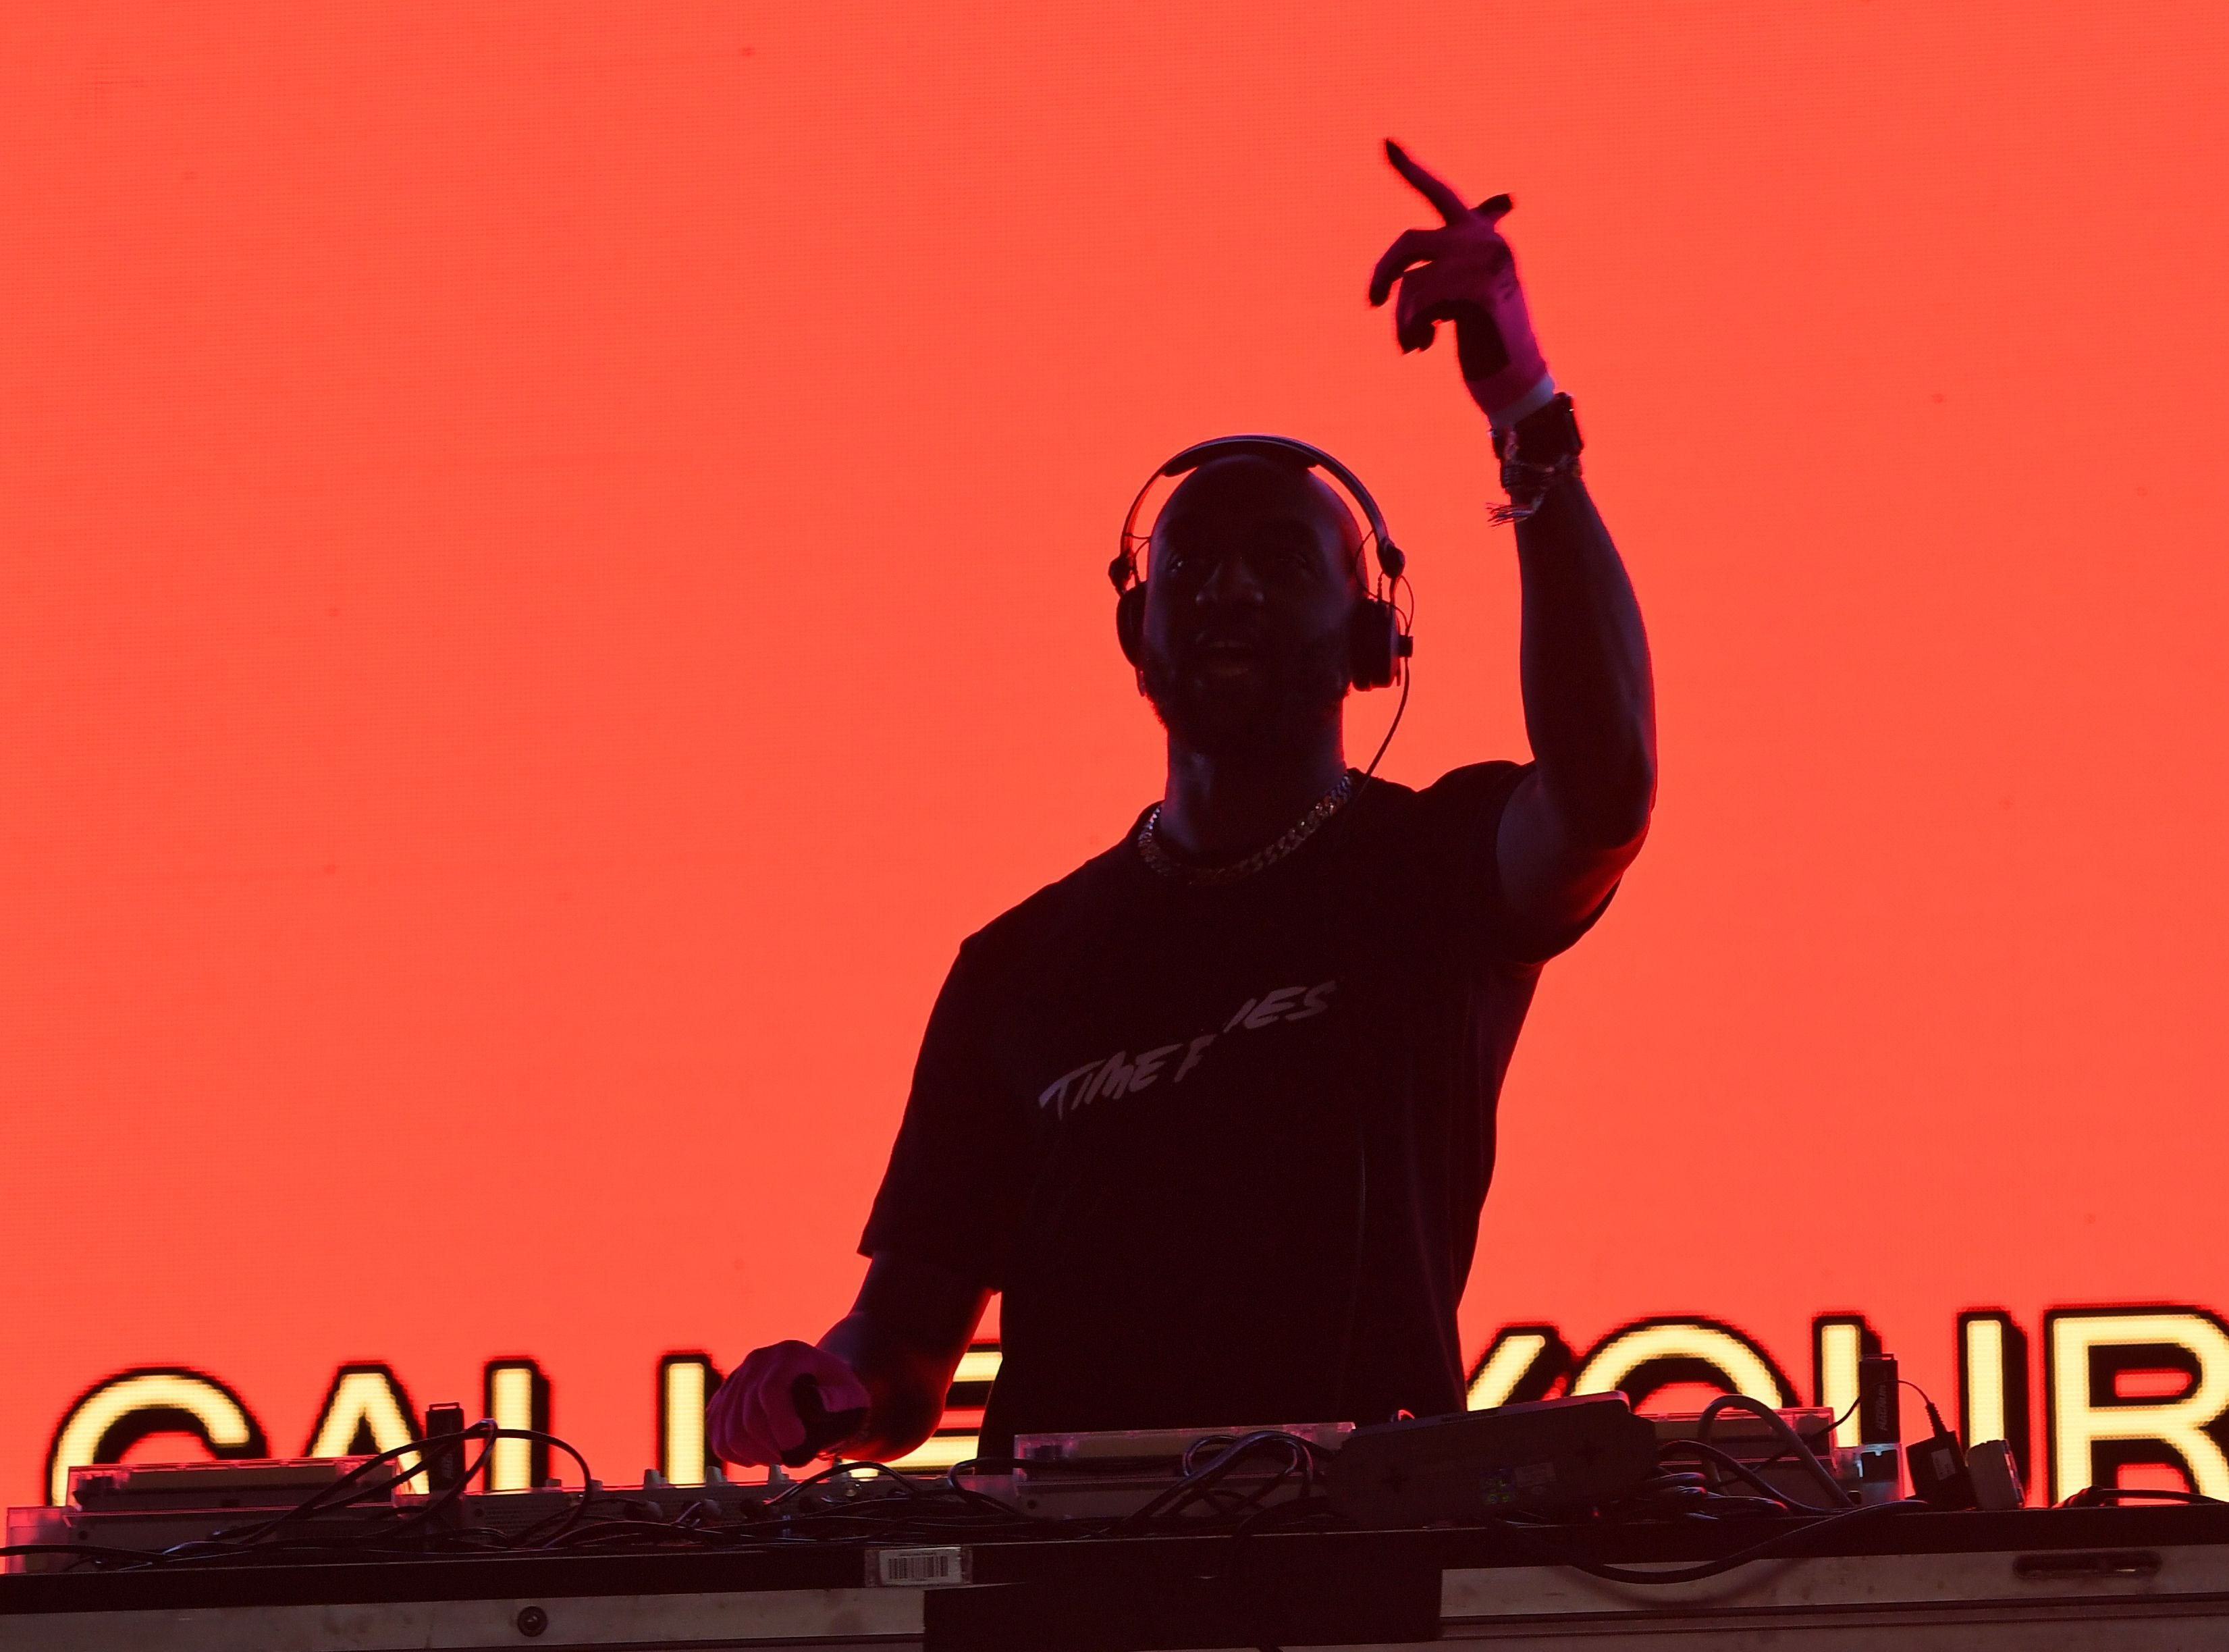 US fashion designer and DJ Virgil Abloh performs on stage at the Coachella Valley Music and Arts Festival on April 13, 2019, in Indio, California. (Photo by VALERIE MACON / AFP)VALERIE MACON/AFP/Getty Images ORIG FILE ID: AFP_1FM81S